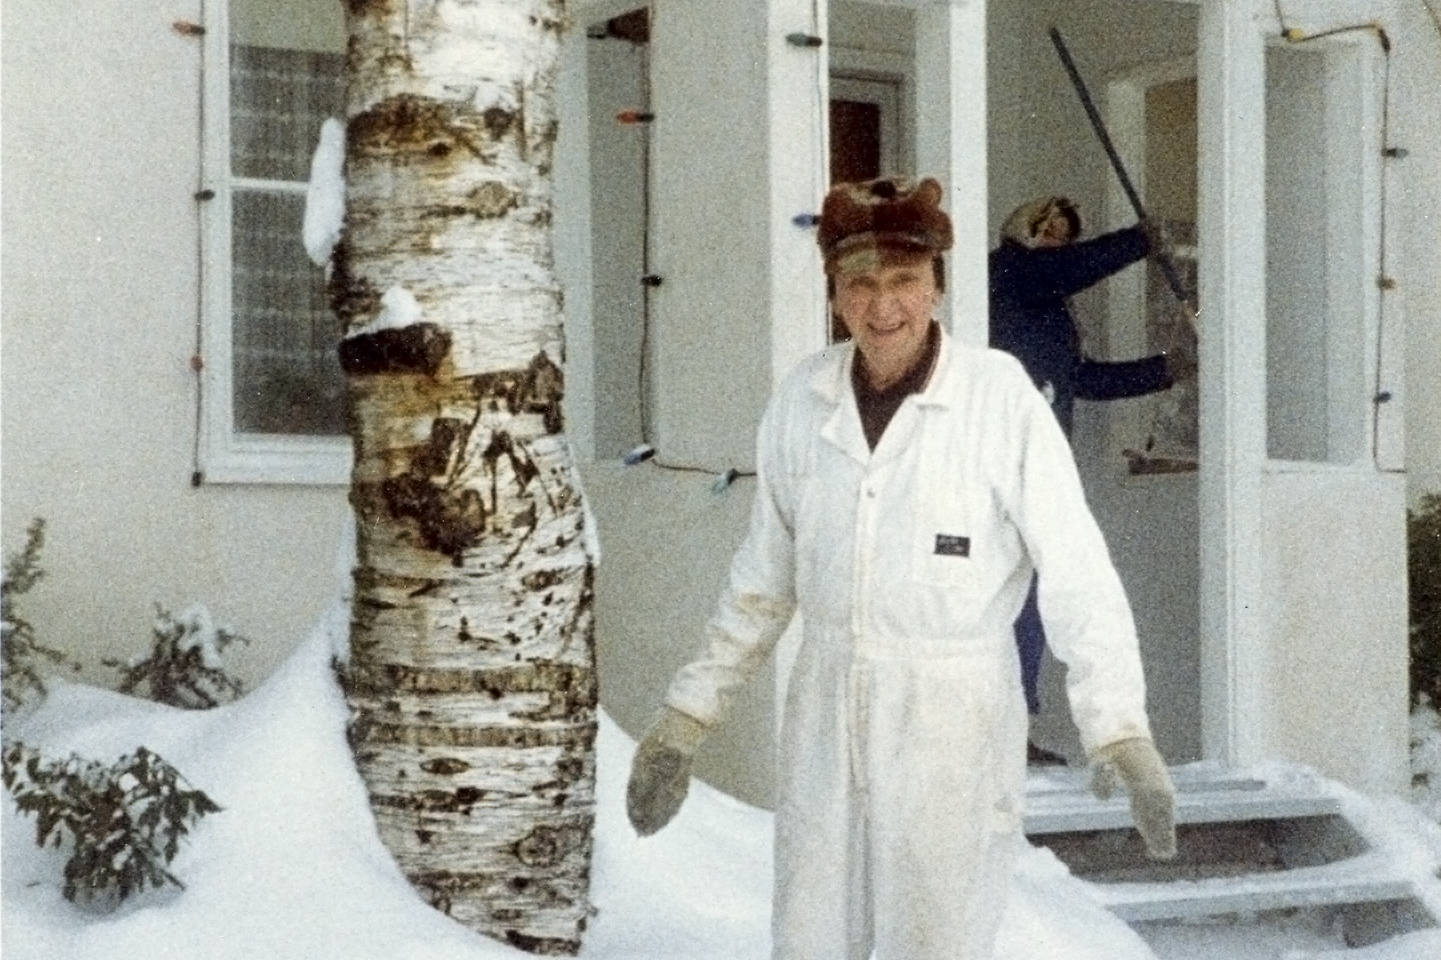 Someone doesn't mind the snow! Mike Bodner has a smile on his face in the winter of 1982. Bodner lived on Coronation Ave (7th St. SE). Mayor W.K Smith and council named the street to commemorate the crowning of Queen Elizabeth II in 1953. This image is from the John Coulton Collection and courtesy the Archives at R.J. Haney Heritage Village and Museum.